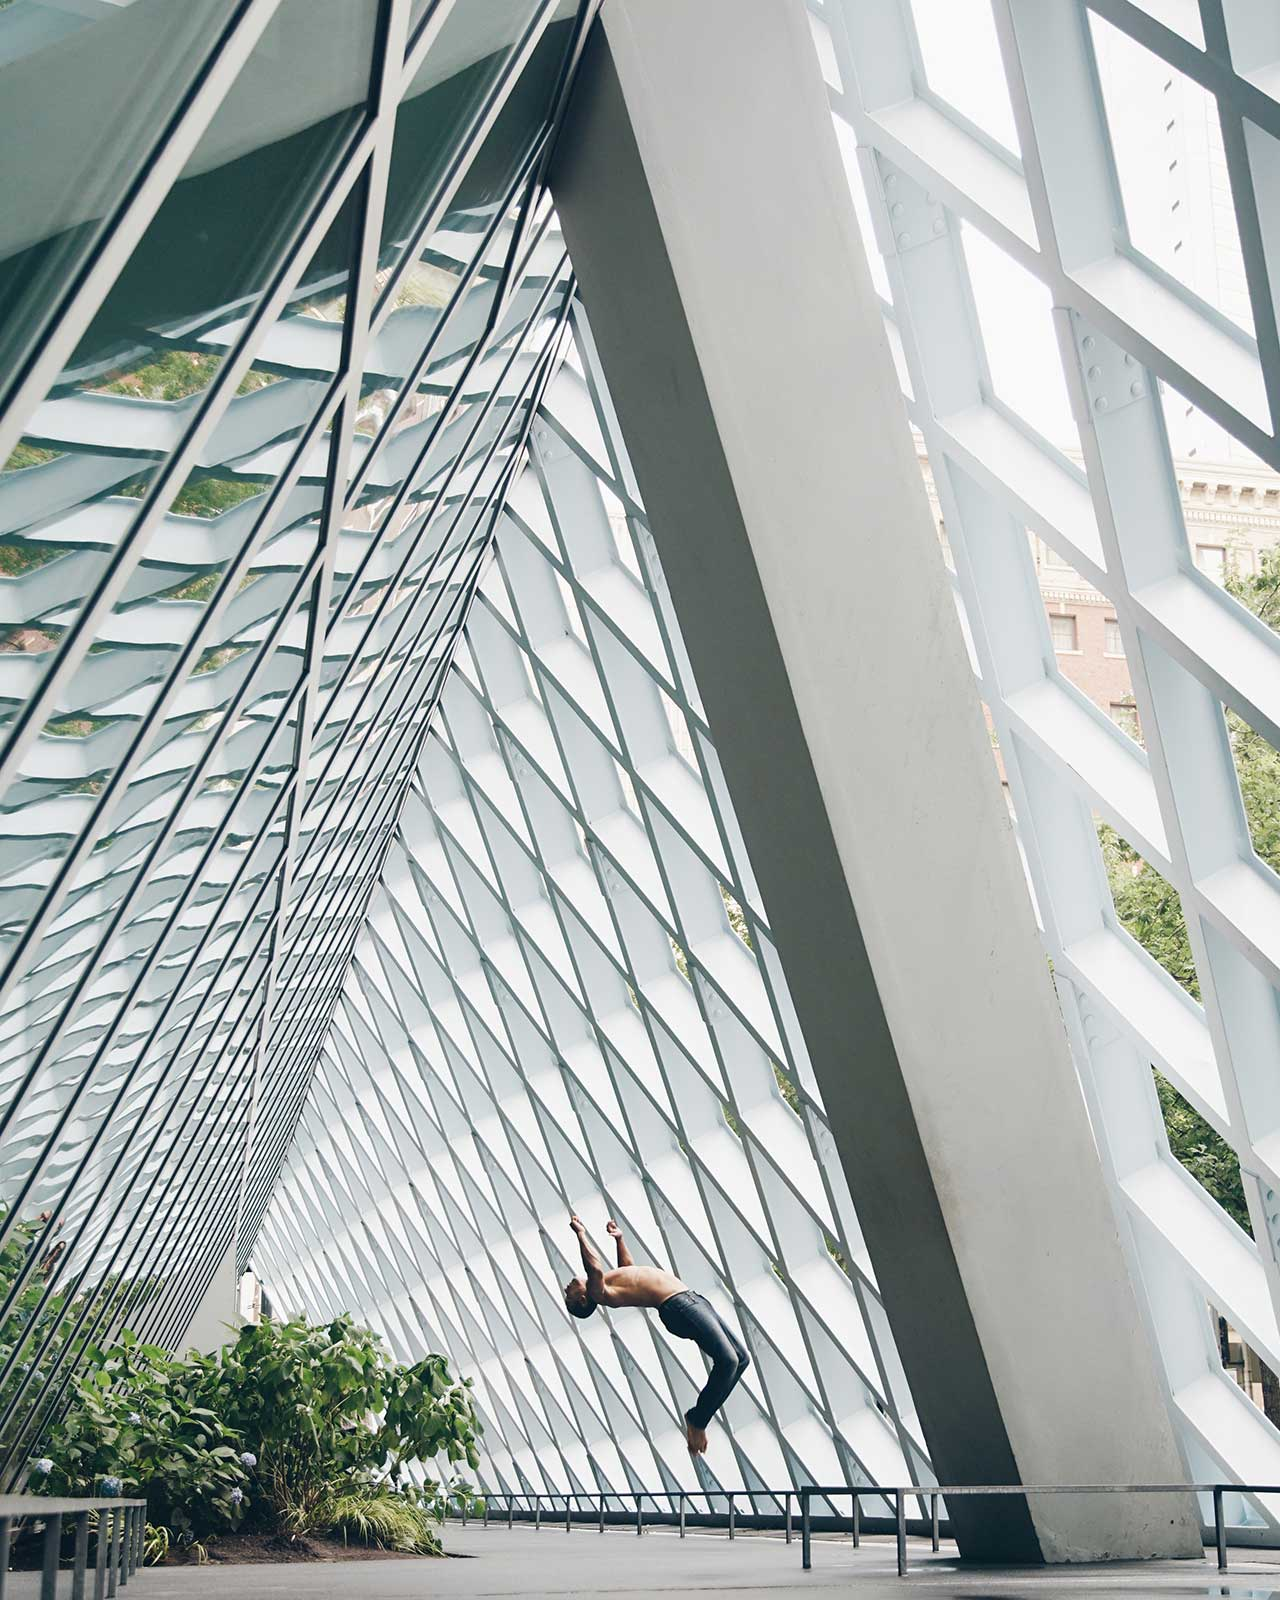 Location: Seattle Public Library | Dancer Nic Walton | Photo © Jacob Jonas from the series #CamerasandDancers.